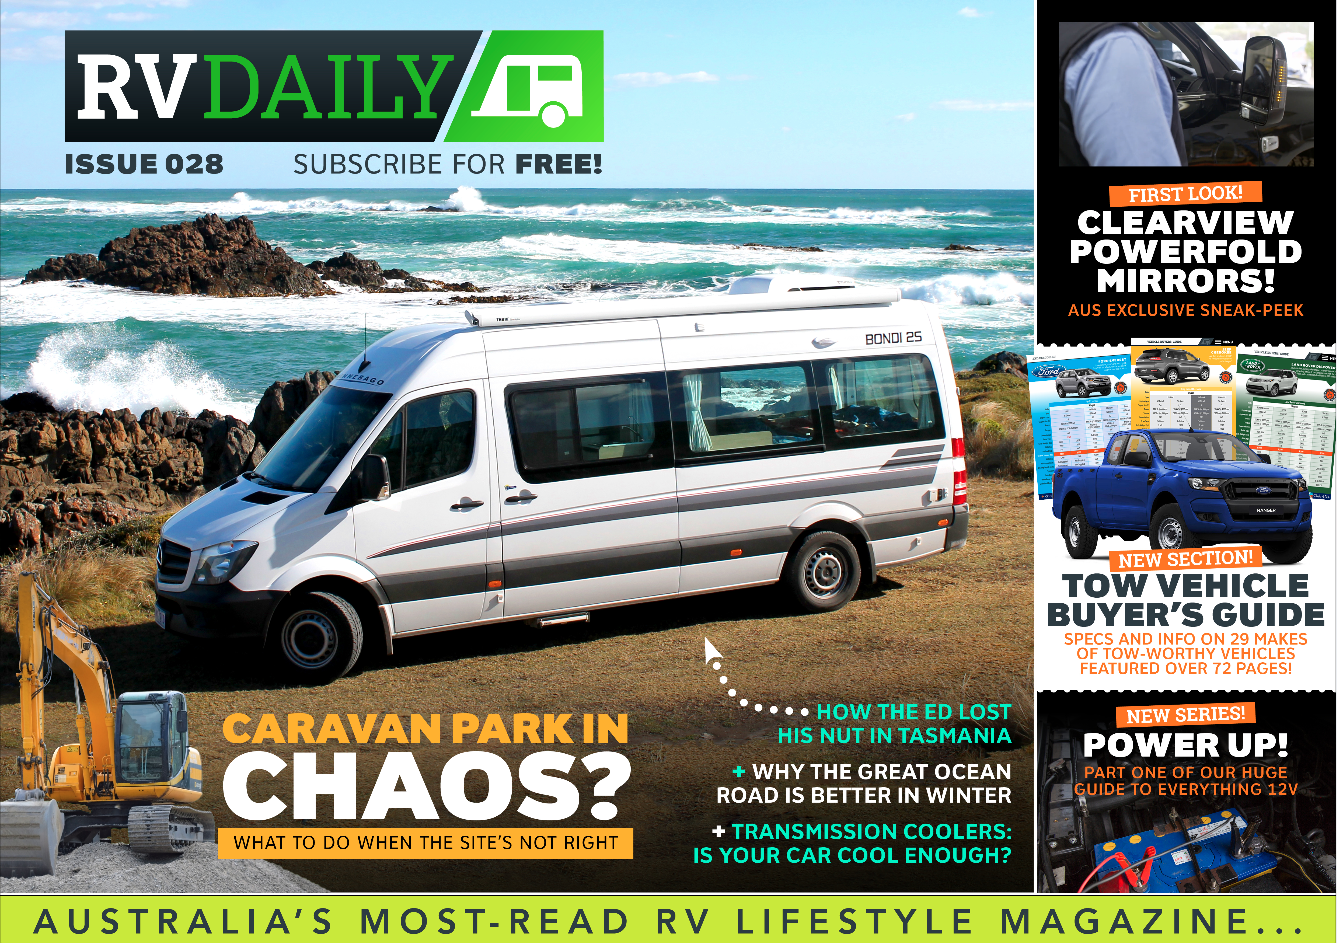 ISSUE 028 – Caravan parks in chaos?